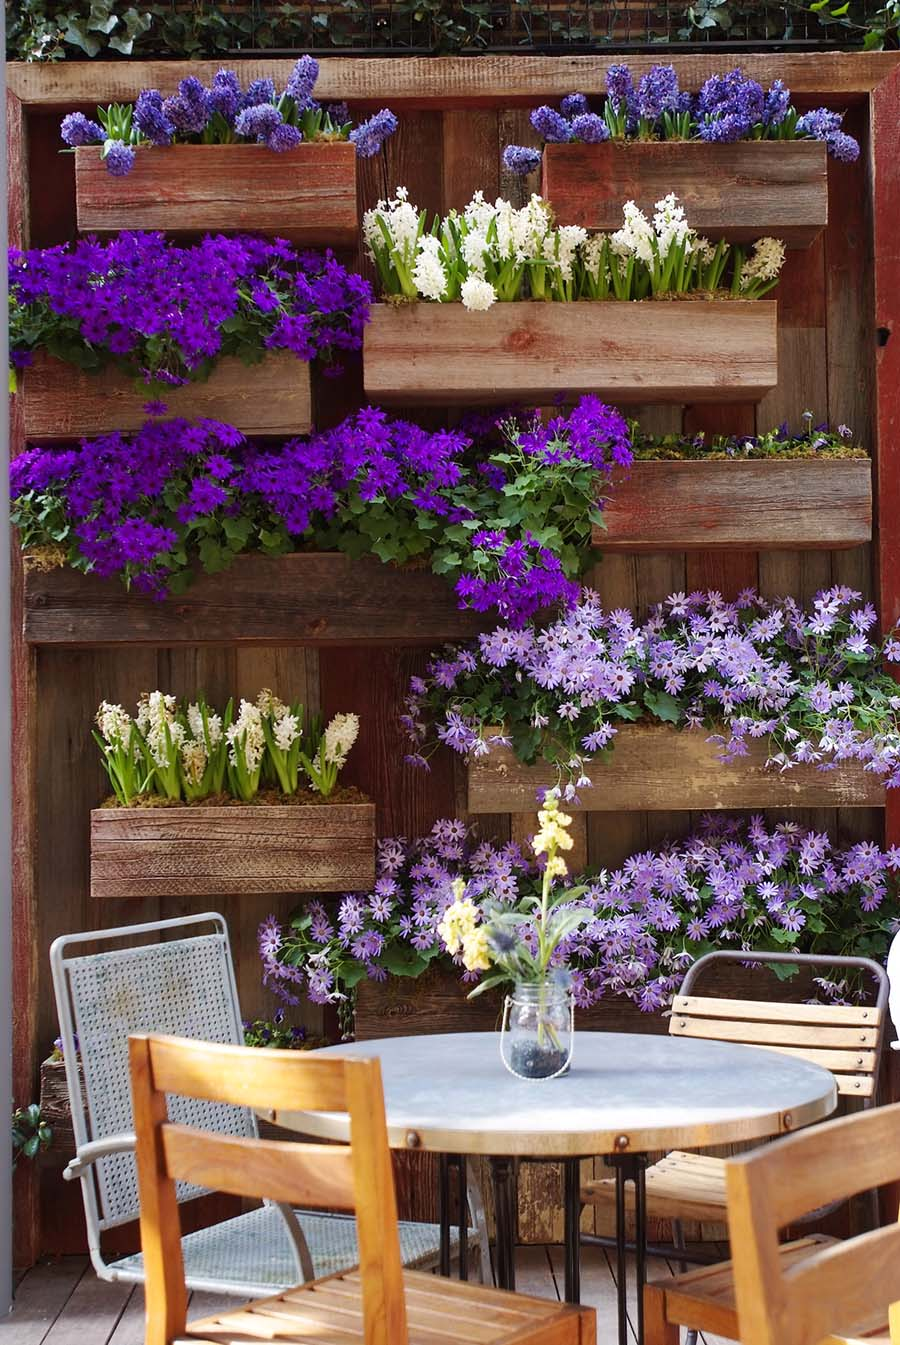 Vertical Gardening Ideas 12 an unusual twist on kitchen spice jars Frame A Patio Space With A Beautiful Hanging Garden